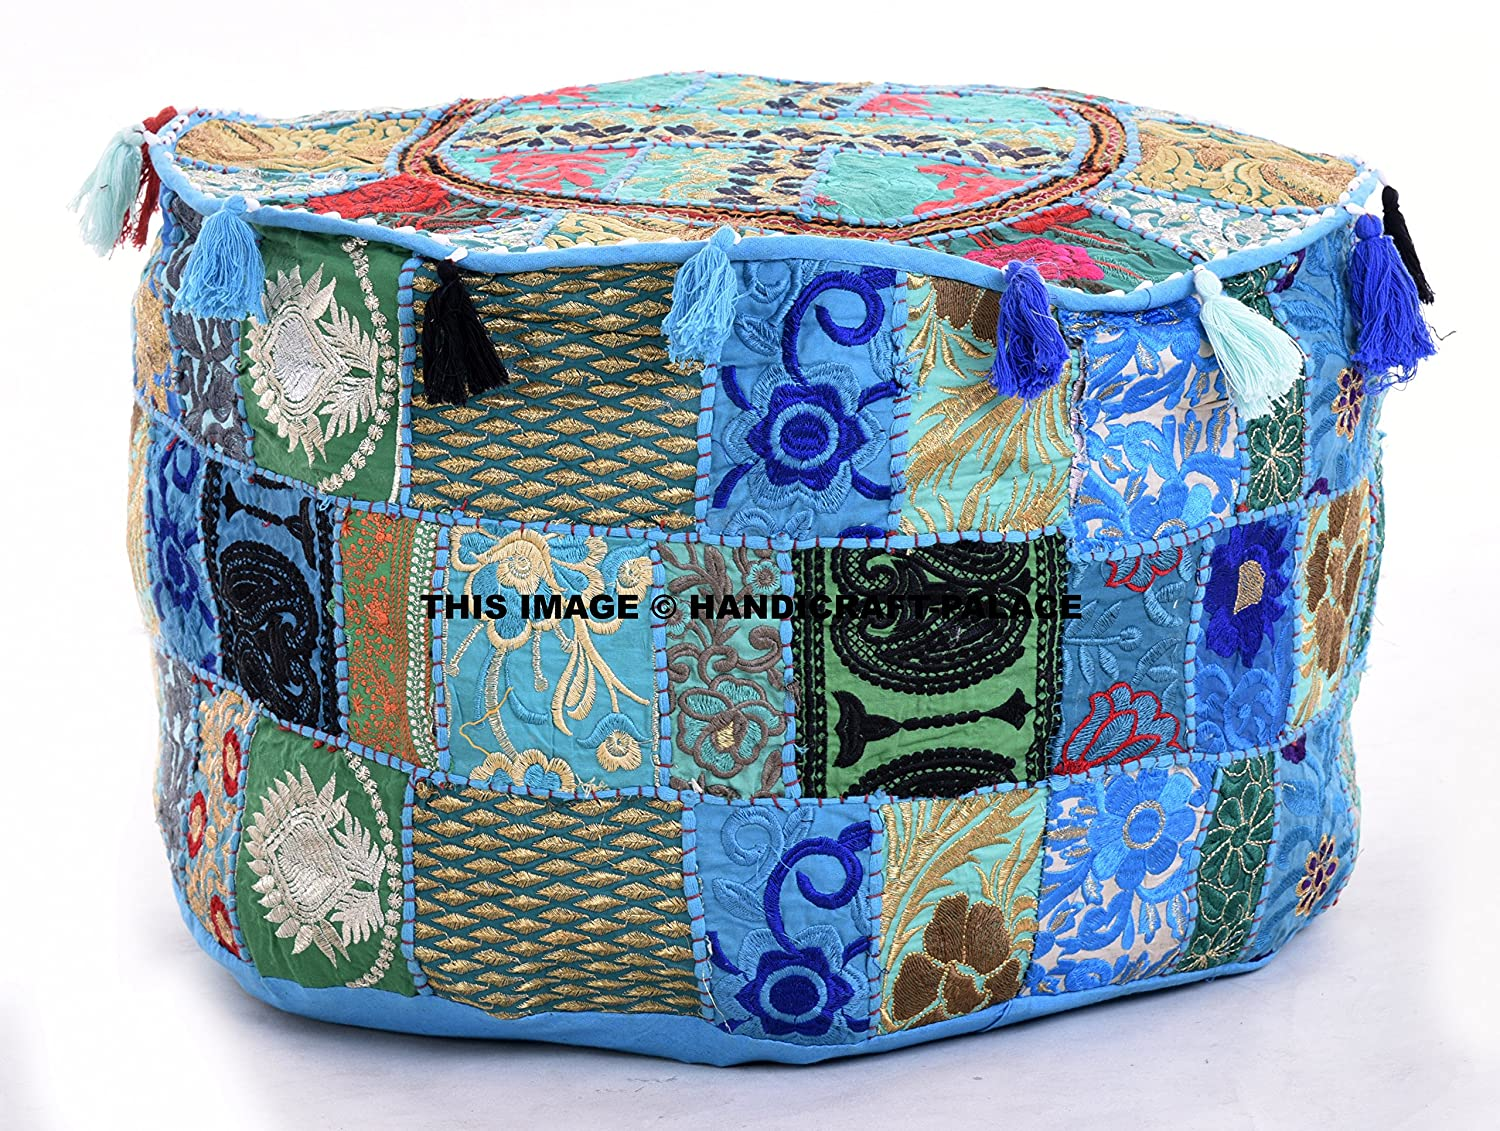 Handicraft-Palace Indian Embroidered Patchwork Ottoman Cover, Traditional Indian Decorative Pouf Ottoman, Indian Comfortable Floor Cotton Cushion Ottoman Pouf, Designs Ethnic Patchwork Pouf 14x22'' By POS-13